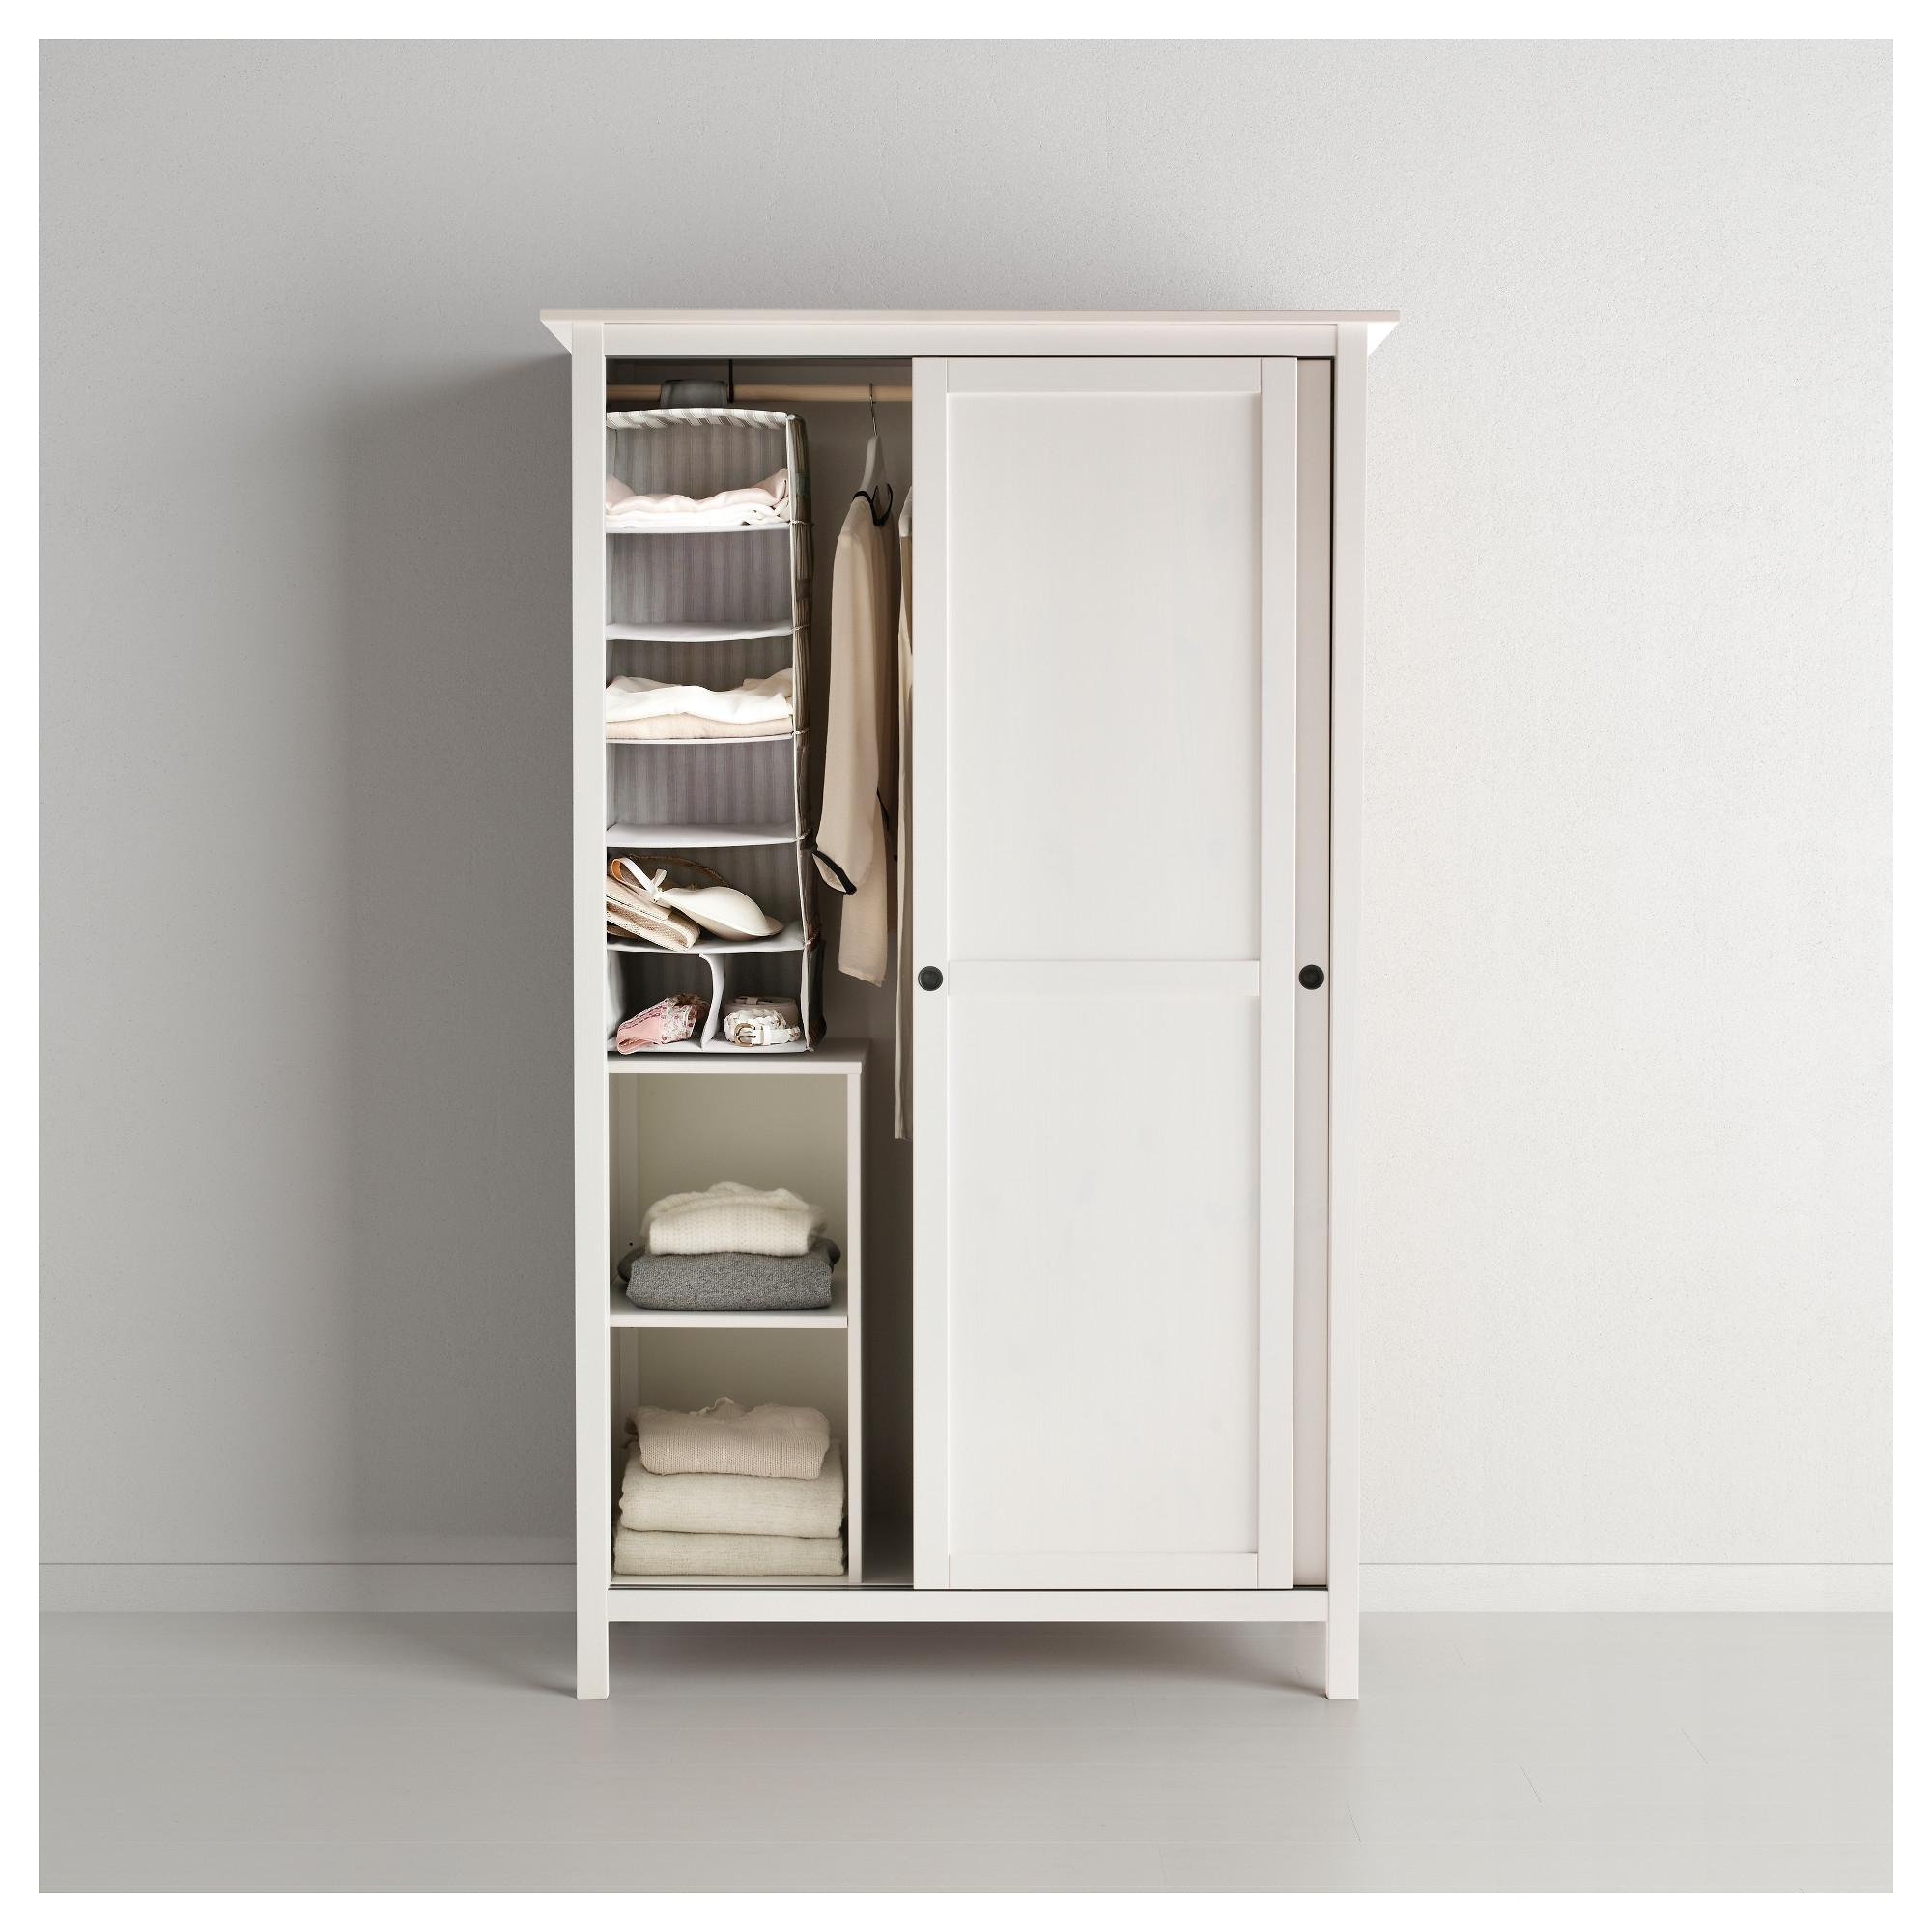 Latest Hemnes Wardrobe With 2 Sliding Doors – Yellow – Ikea With Regard To Wardrobes With 2 Sliding Doors (View 8 of 15)